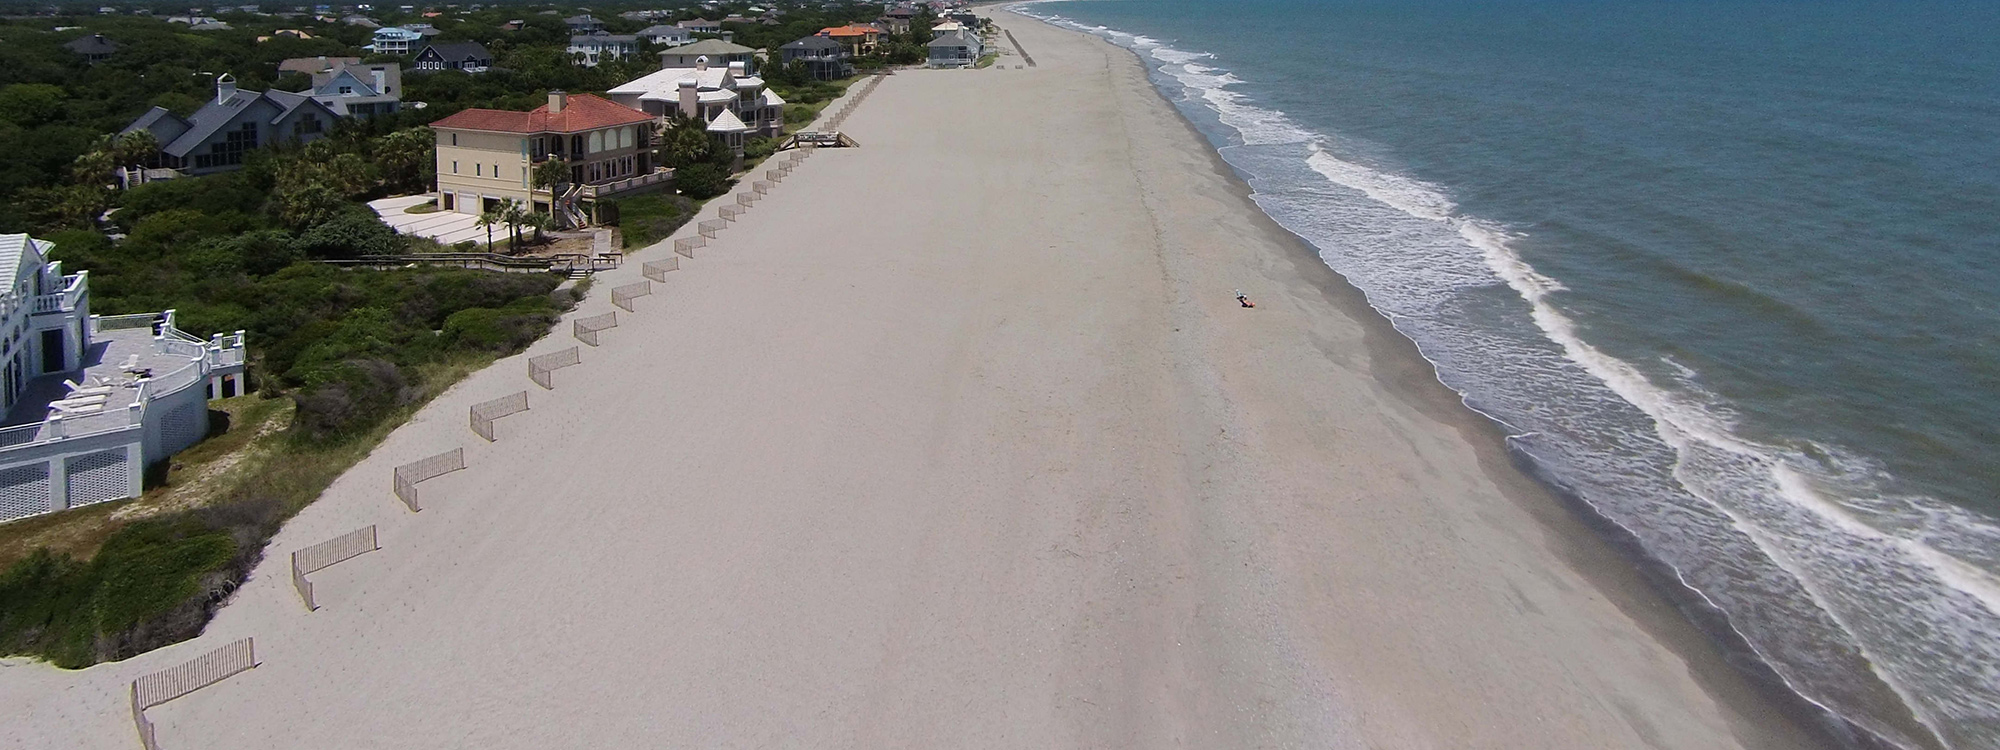 Aerial view of the beach at DeBordieu Colony in South Carolina